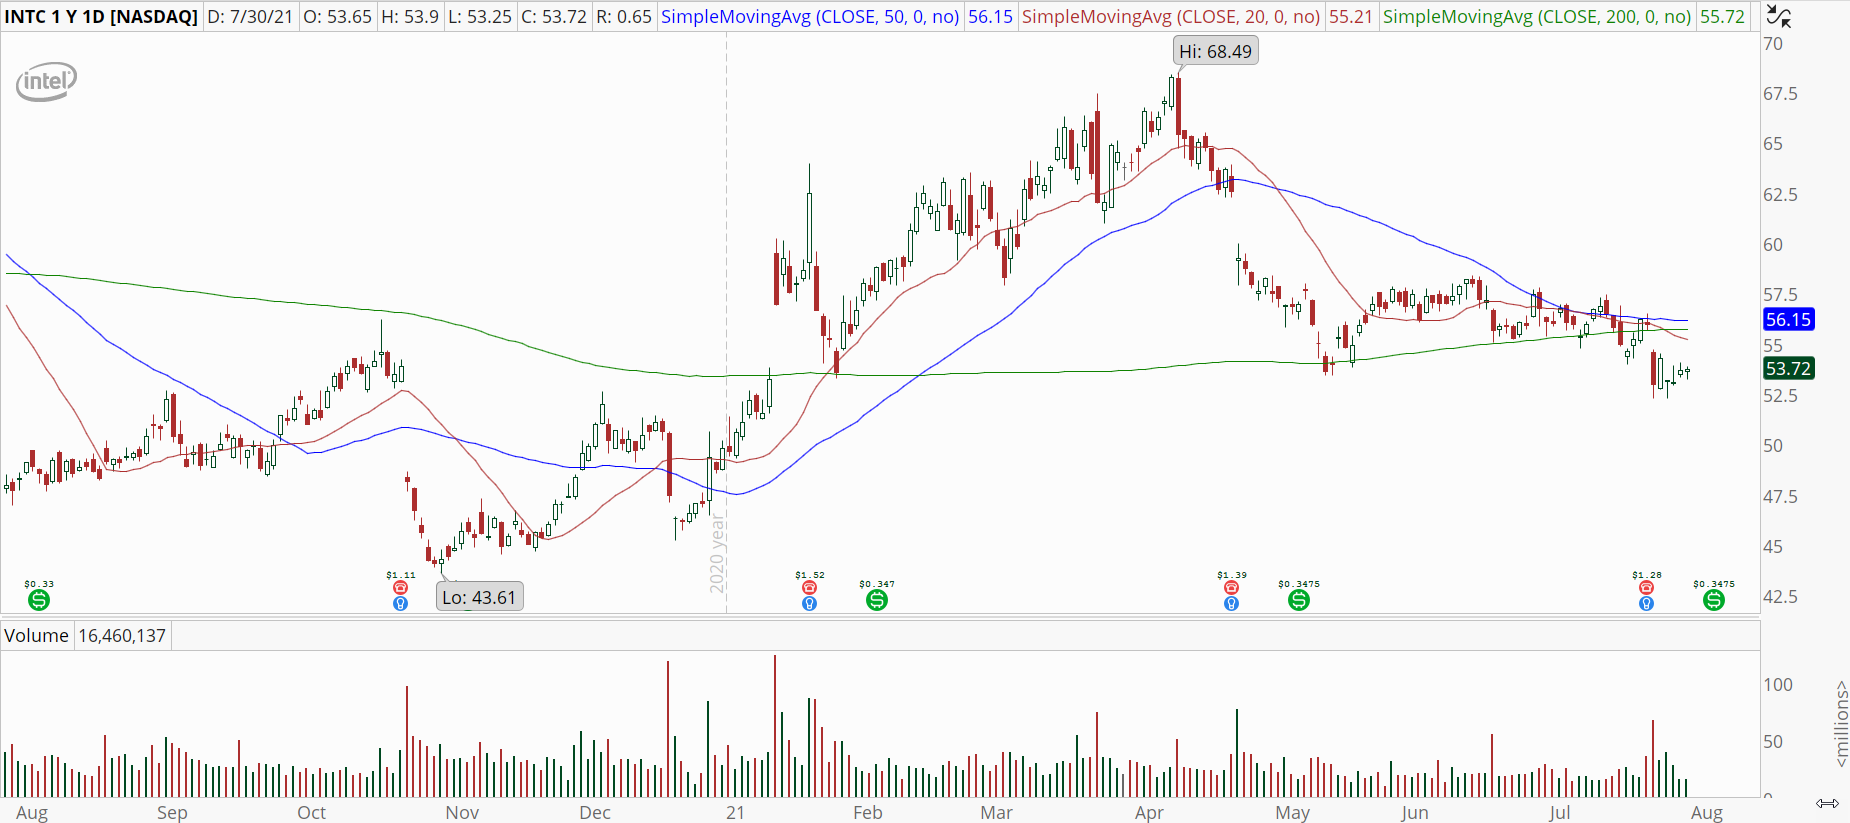 Intel (INTC) stock with daily downtrend.